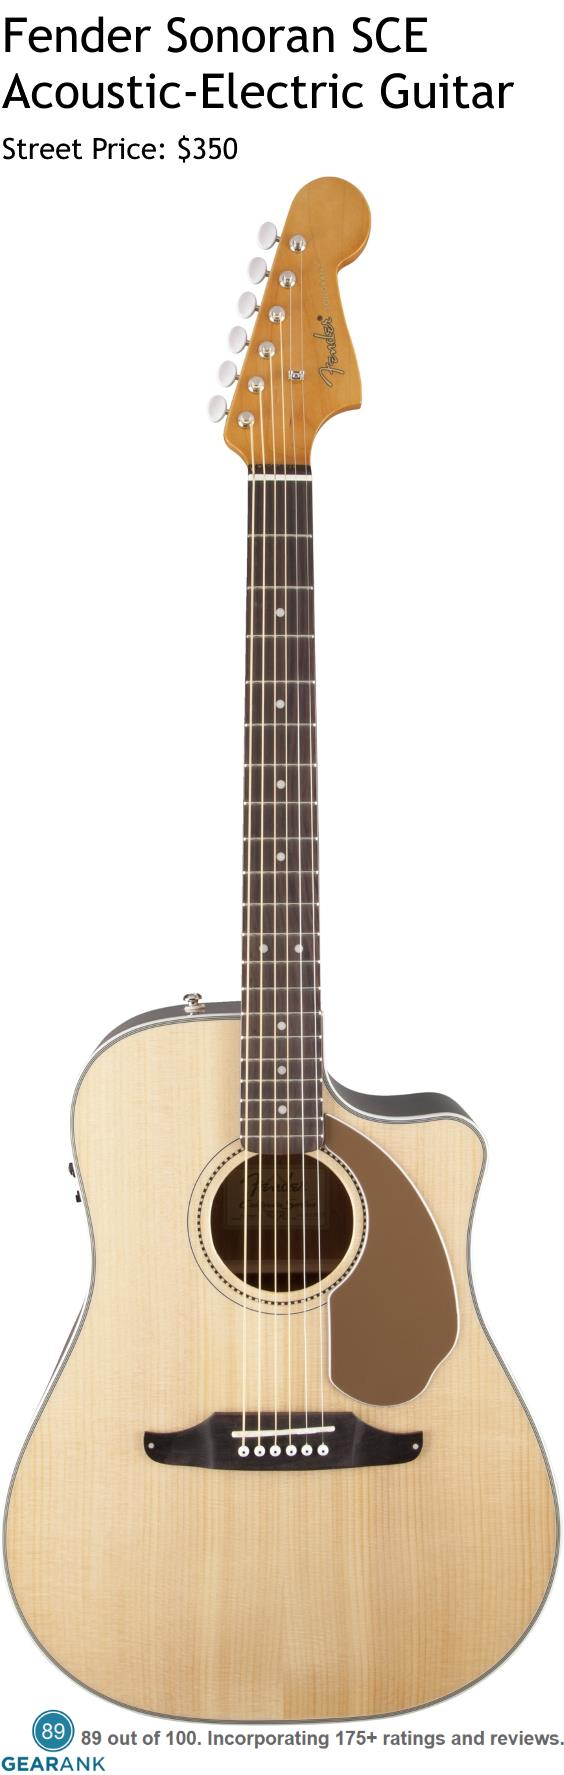 medium resolution of fender sonoran sce acoustic electric guitar it has a solid spruce top with scalloped x bracing and mahogany back and sides for the electronics it uses